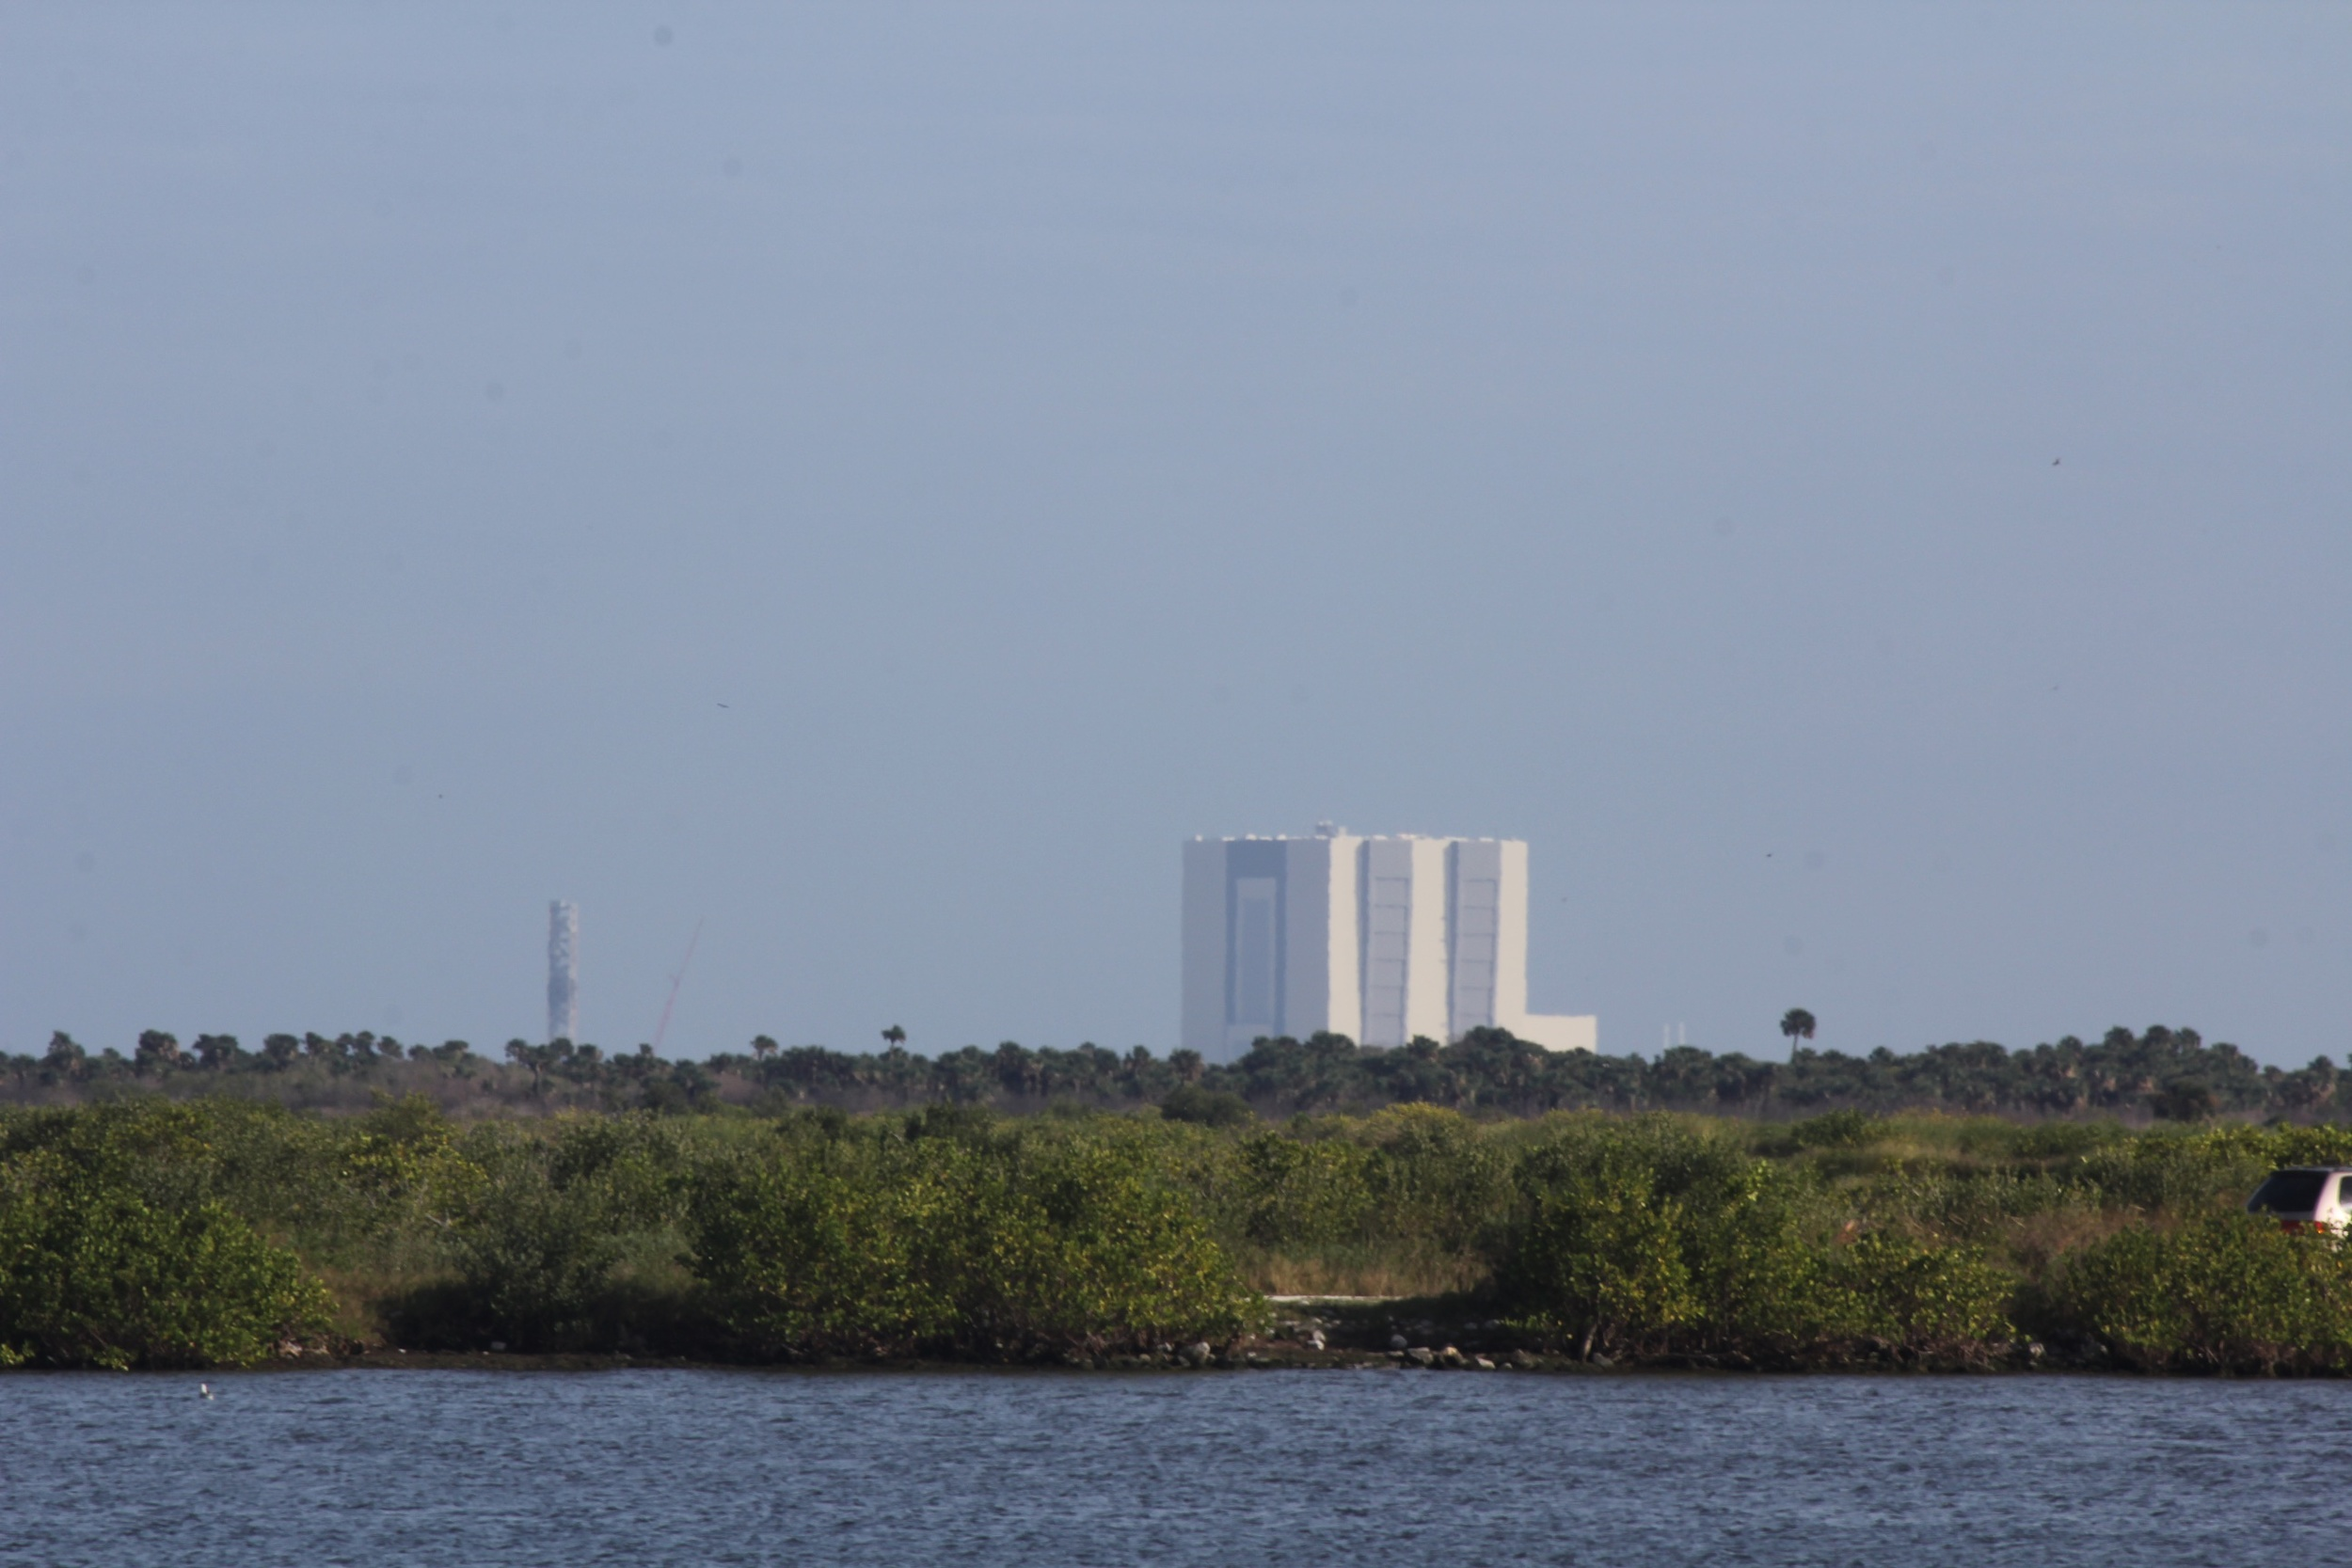 This is where we windsurfed today, NASA Shuttle buildings